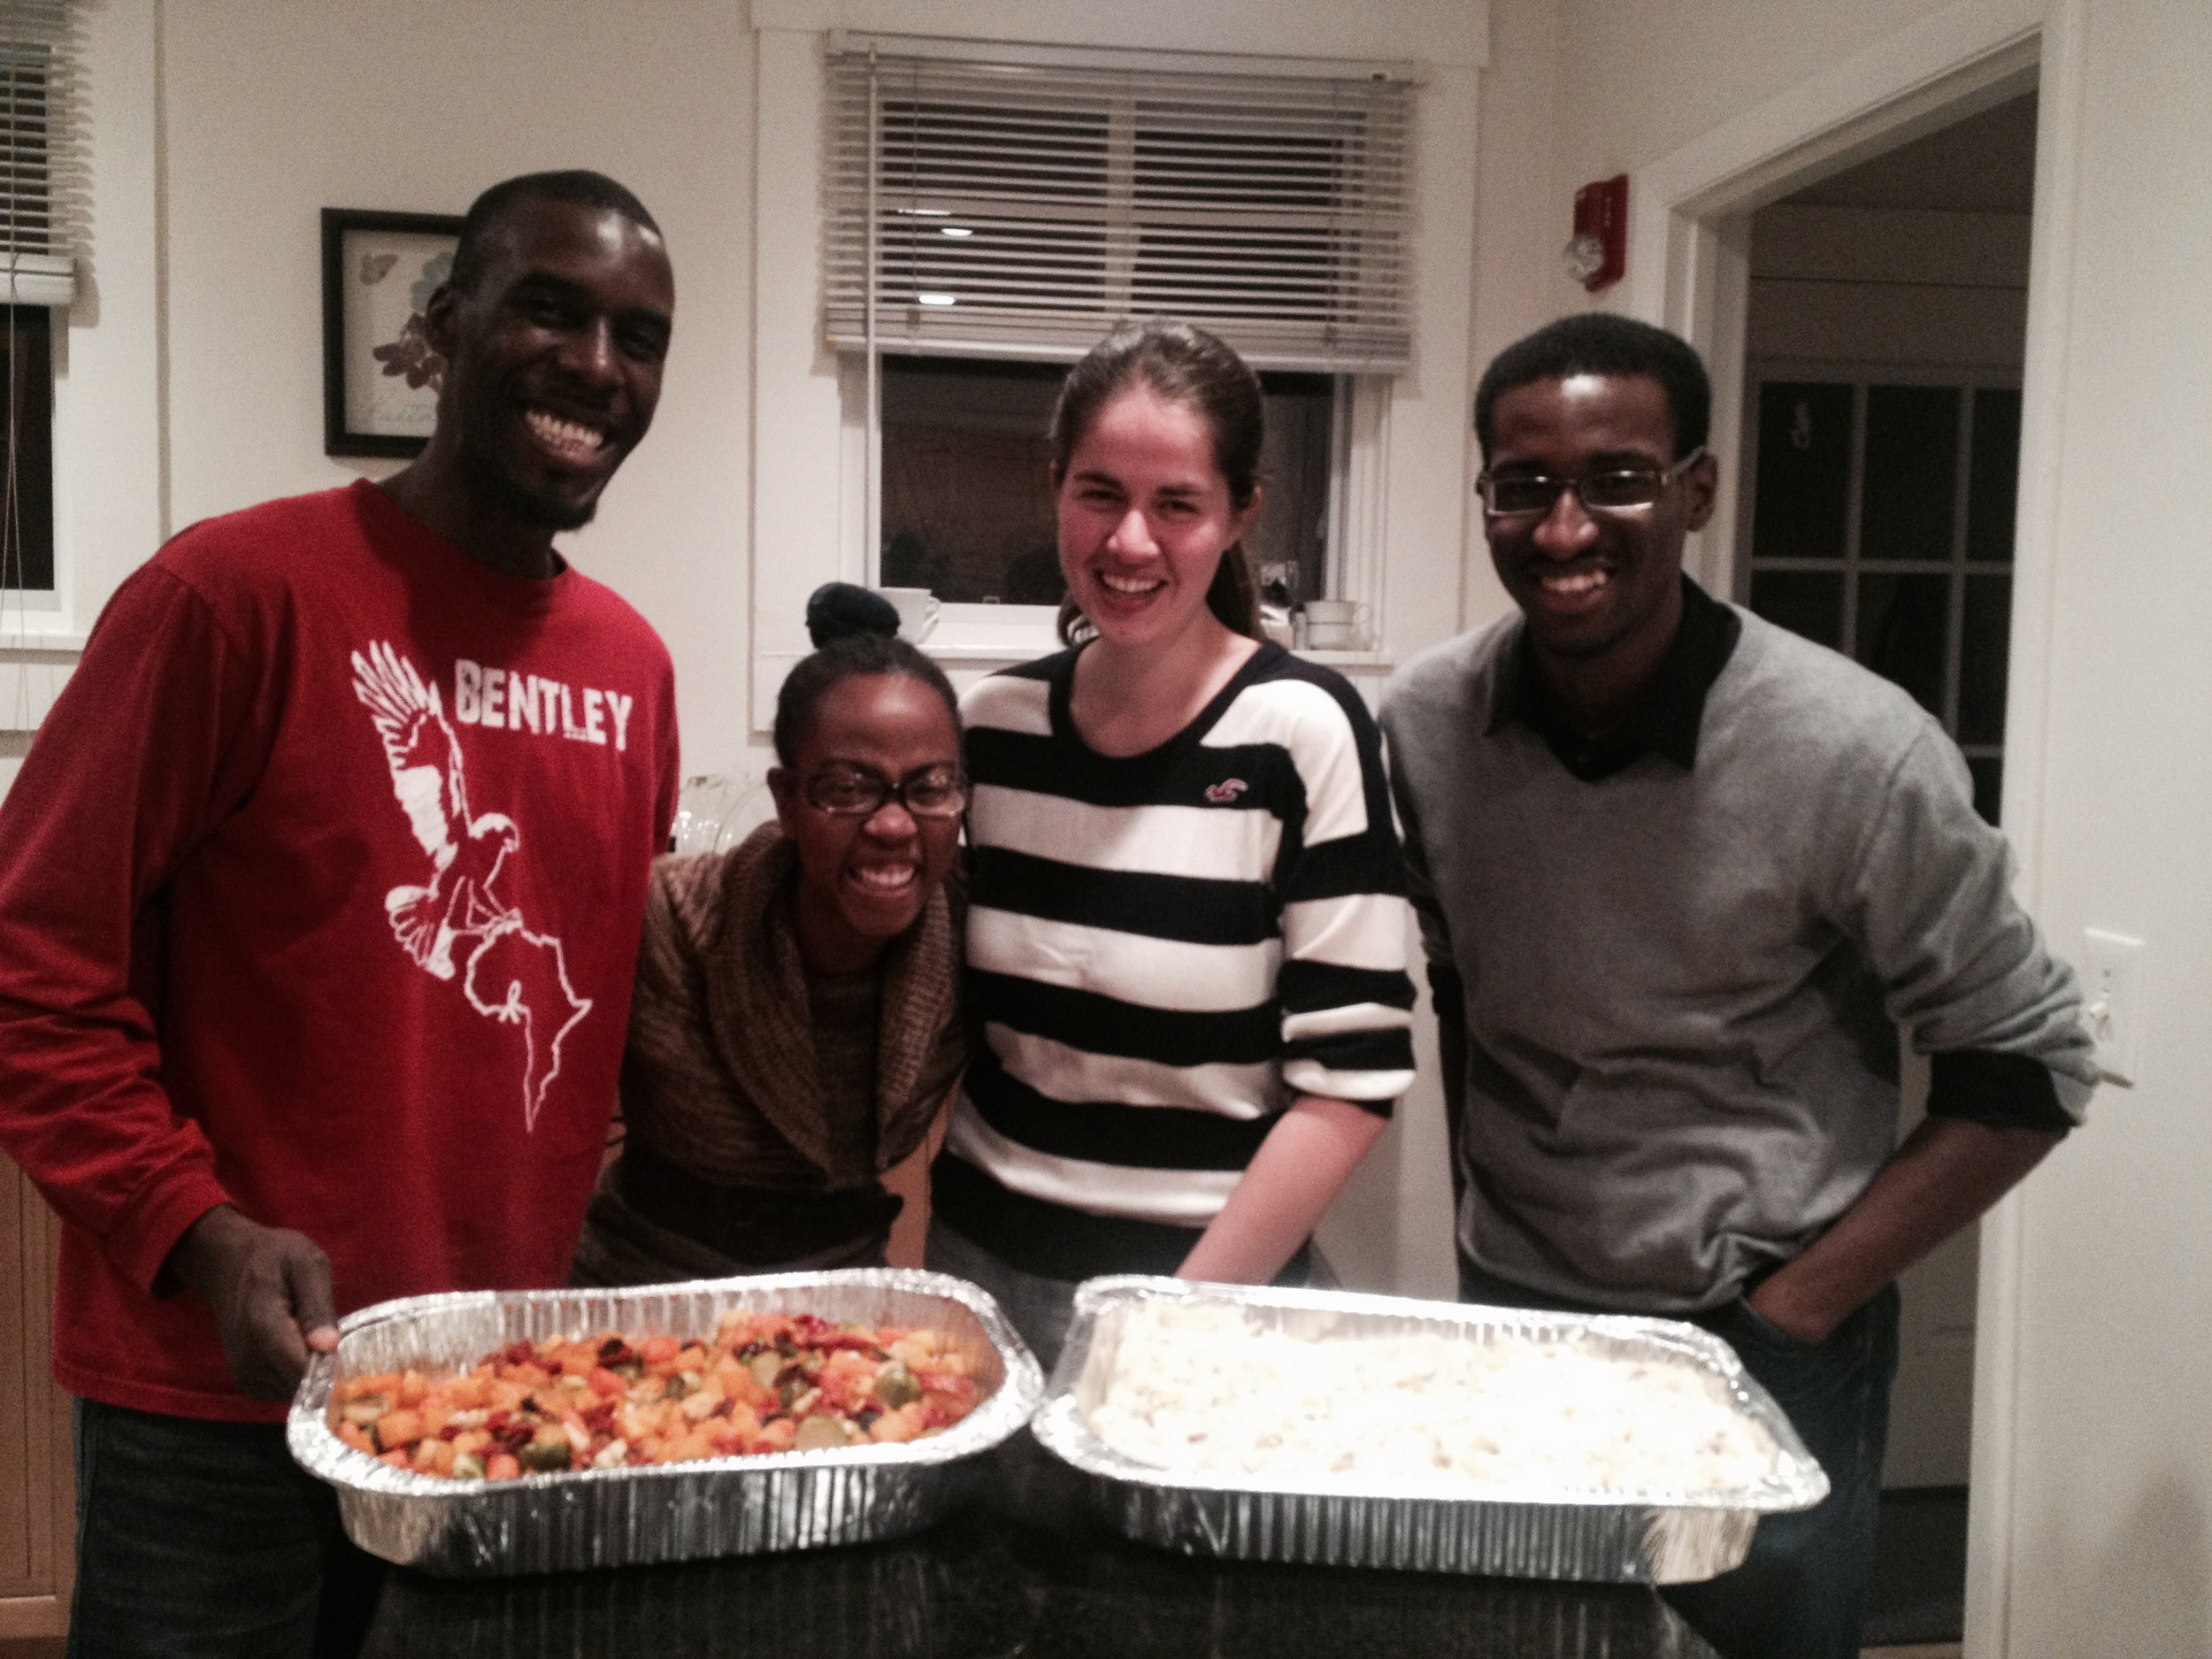 STRIDE Staff and MIT students prepared a Thanksgiving meal for local homeless women.